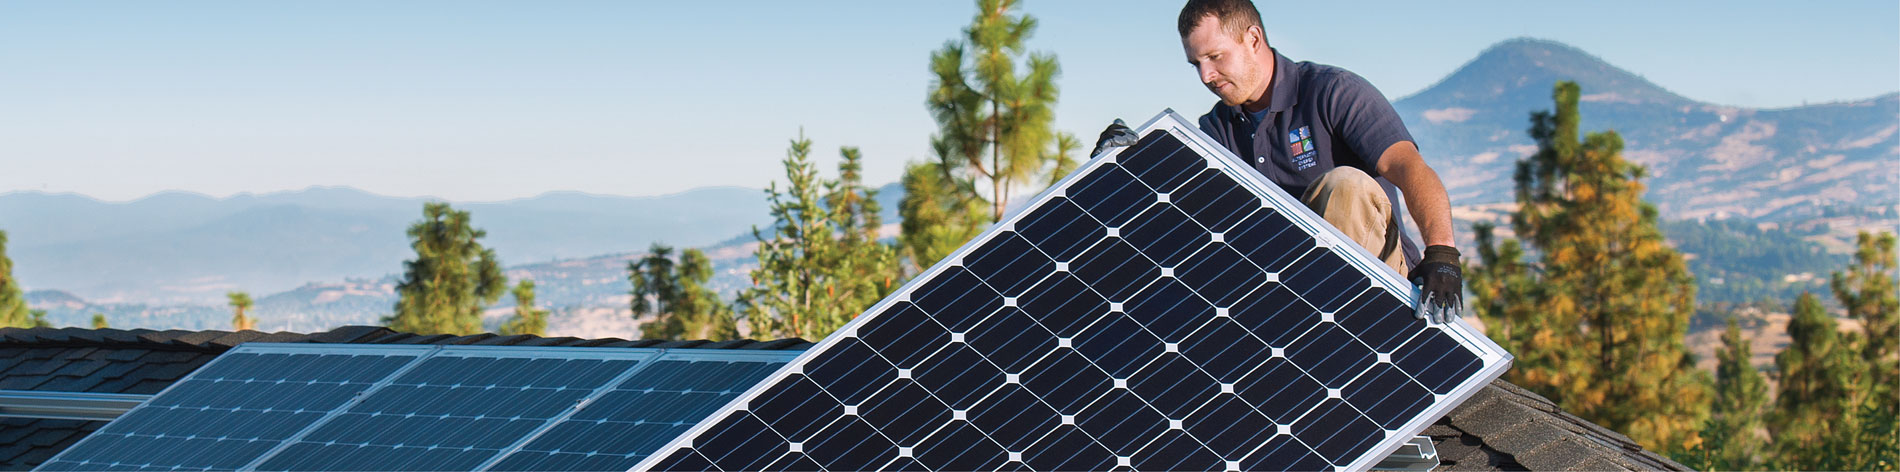 About Us - Alternative Energy Systems of Southern Oregon